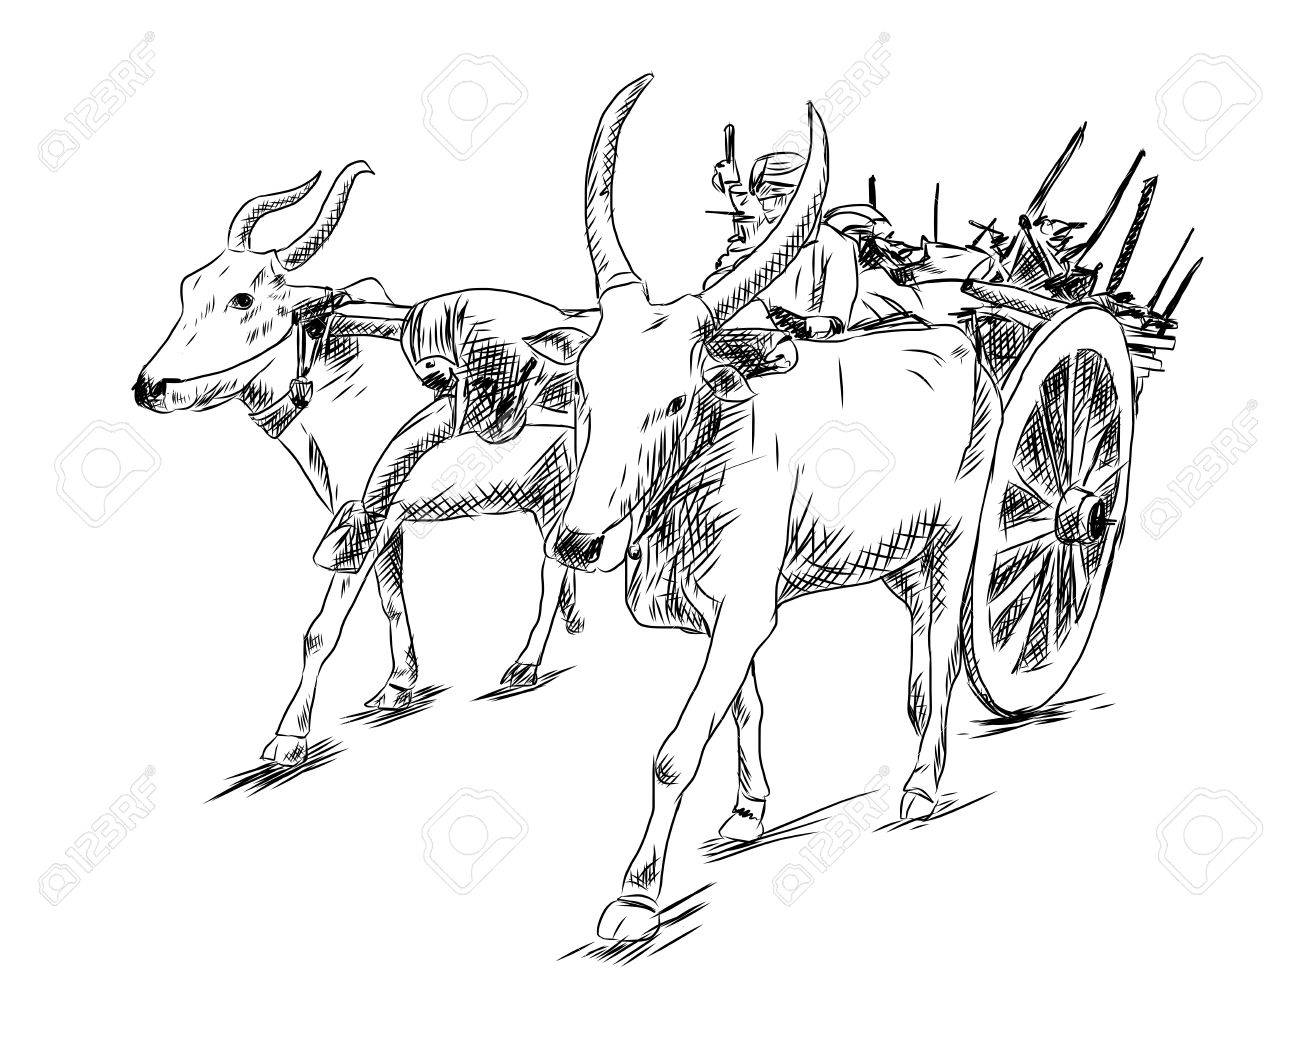 1300x1037 Hand Drawn Sketch Of Bullock Cart In Vector Illustration. Royalty